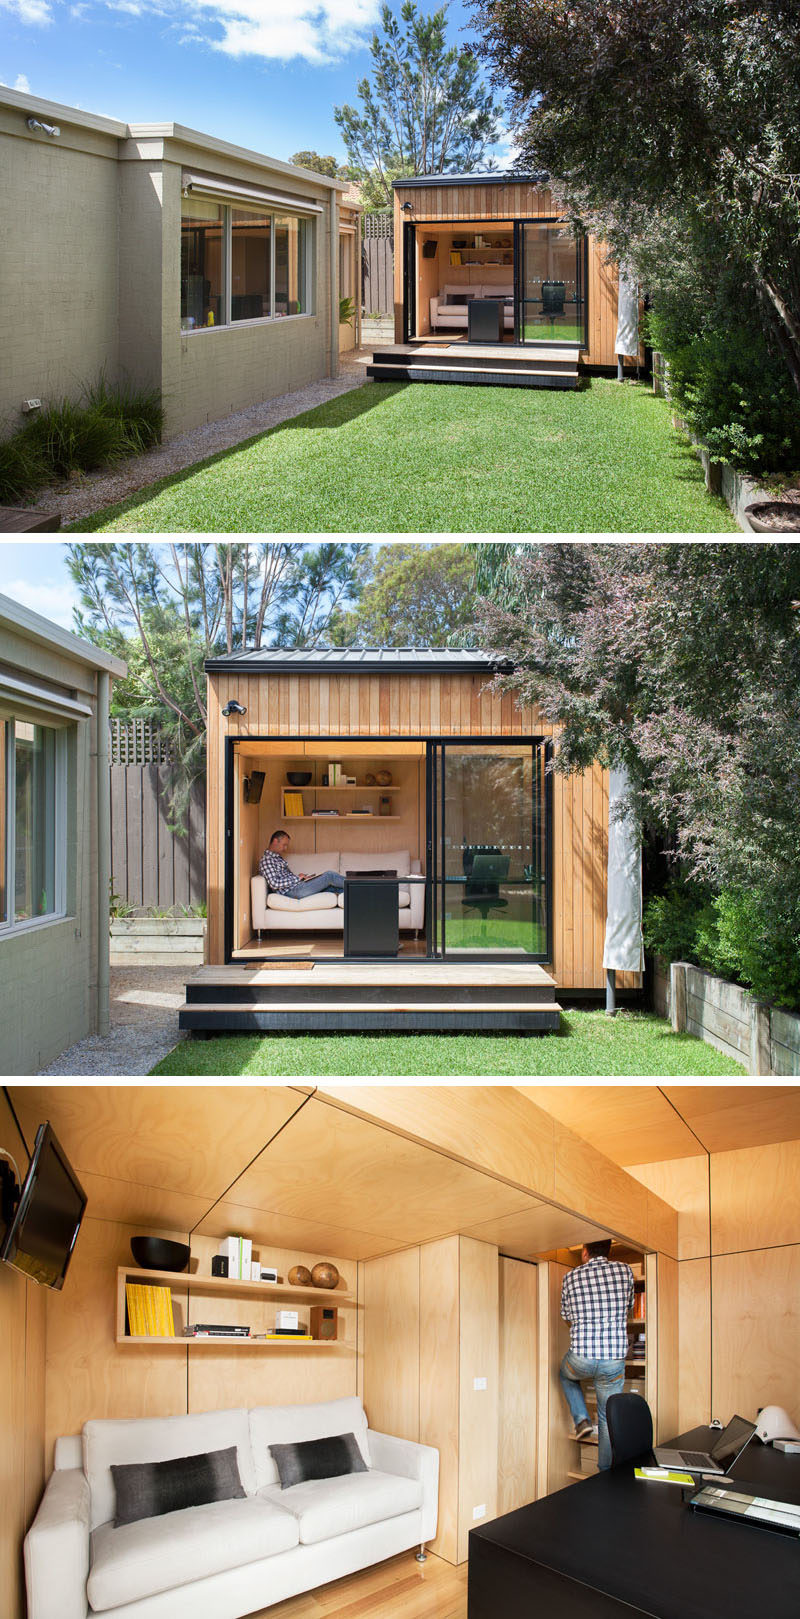 A small backyard studio accommodates a couch, a work space, and a lofted sleeping area.